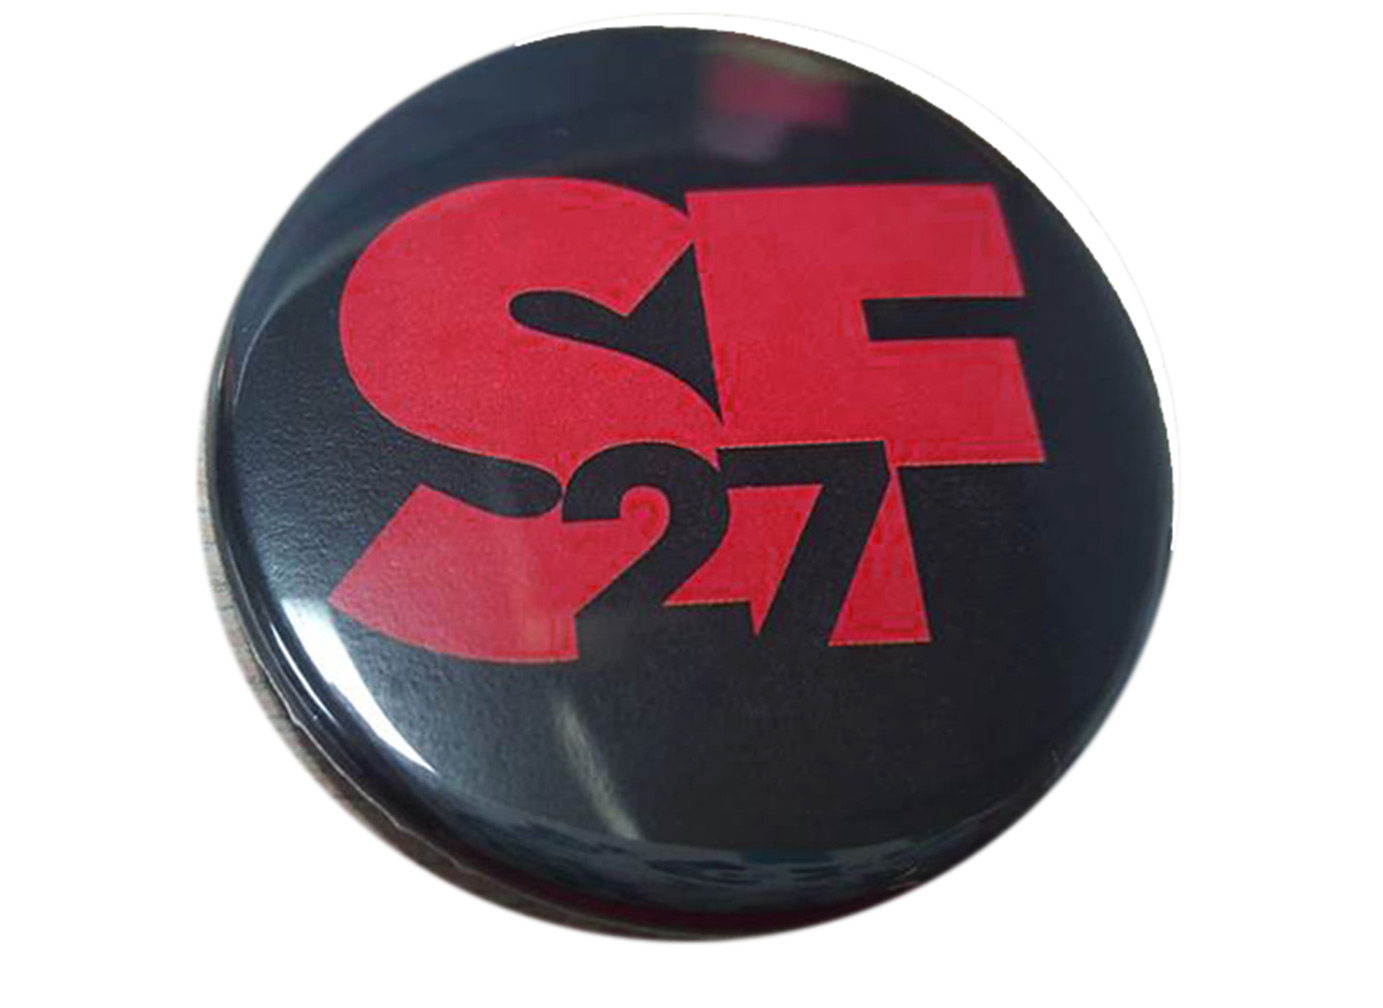 Image result for Sam Foltz 27 logo